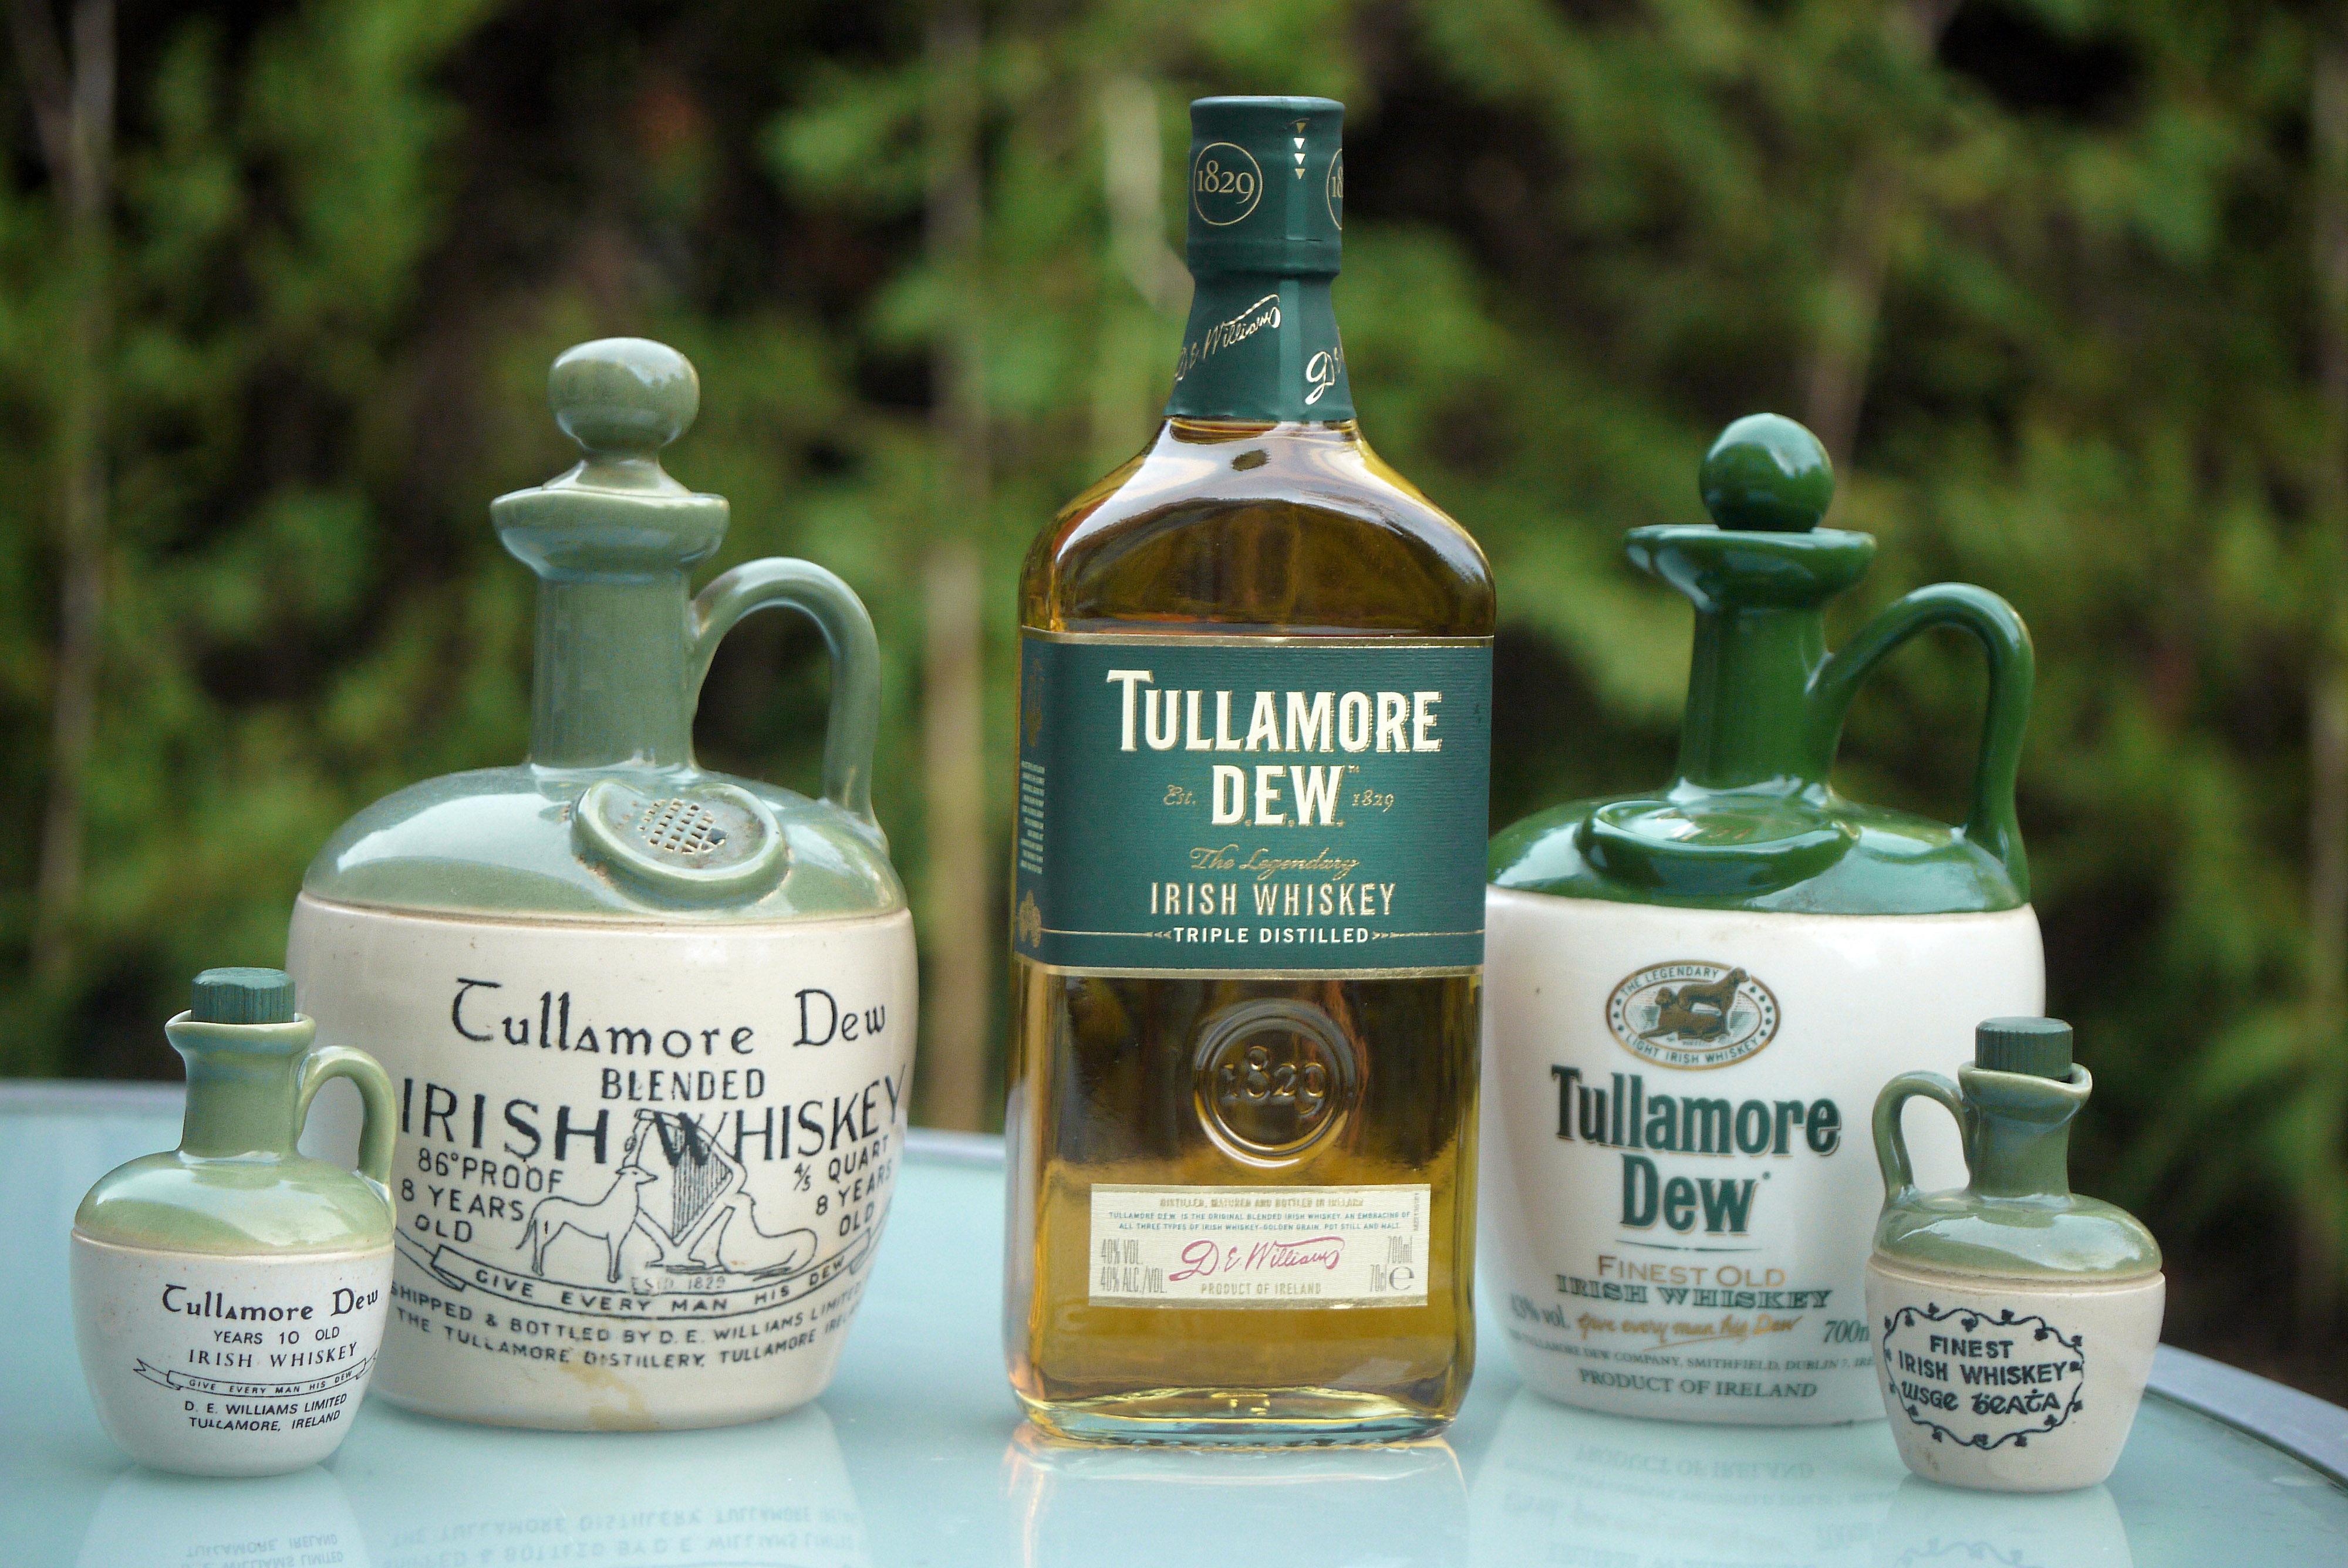 5 different size containers of Tullamore dew Irish Whiskey on a table with trees in the background